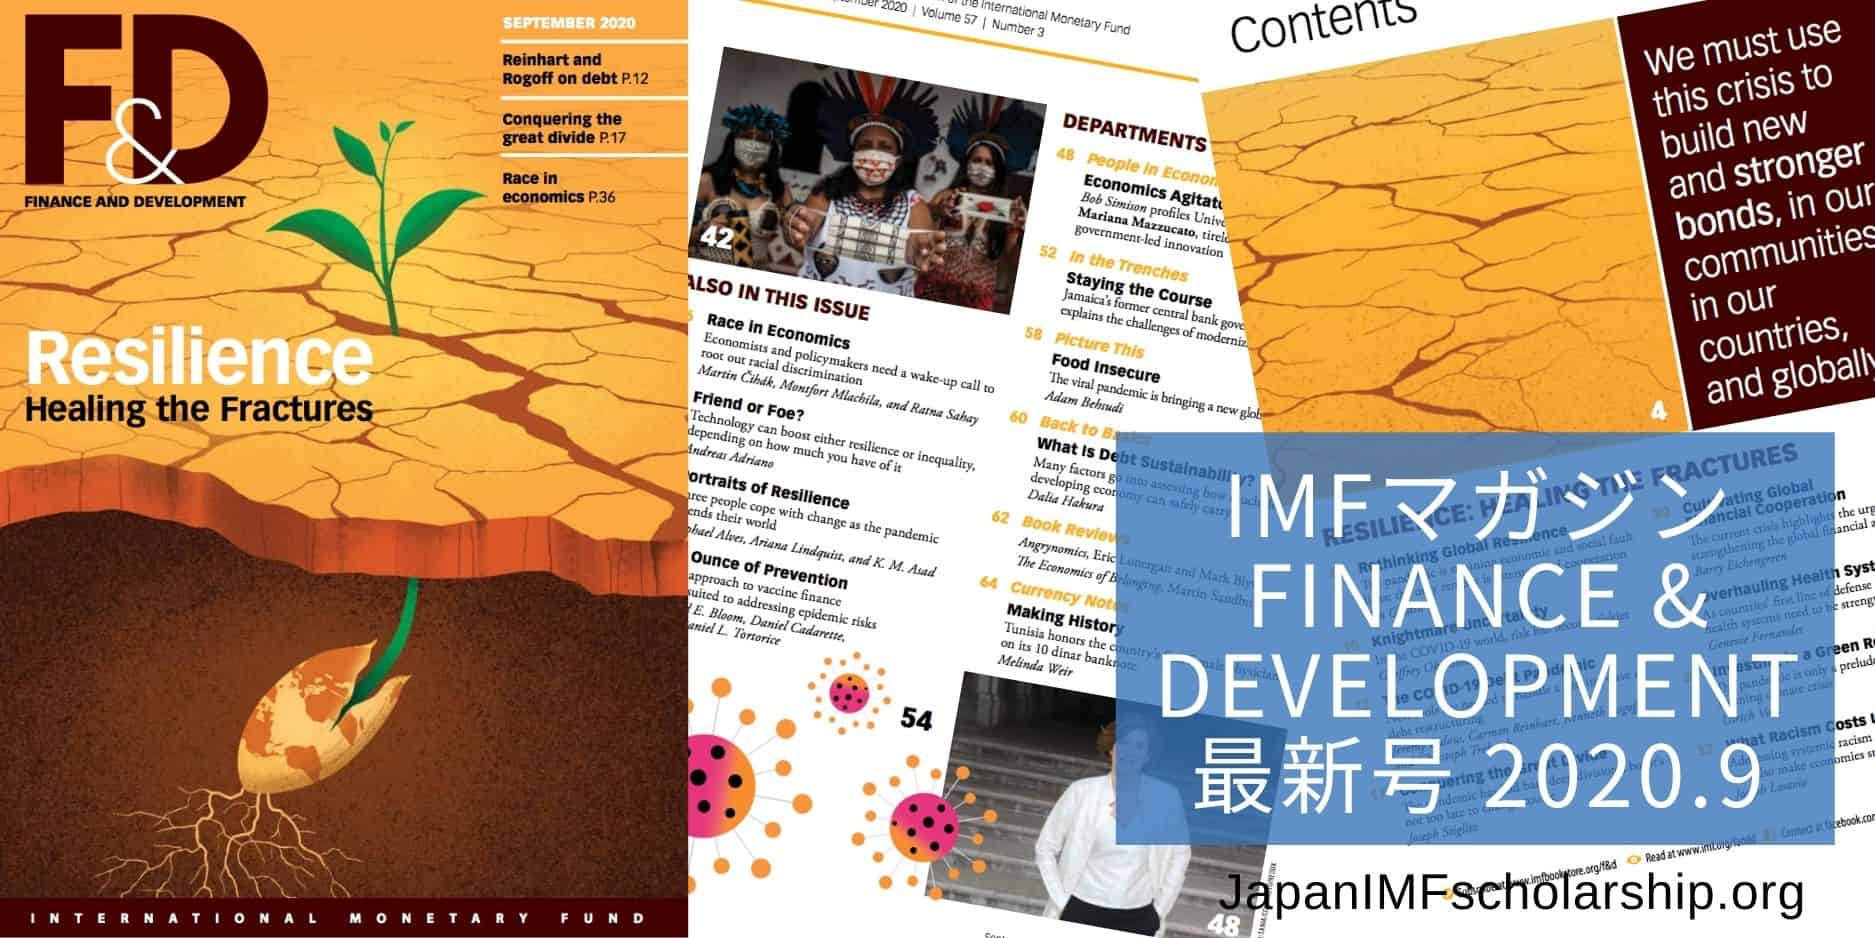 jisp web-fb imf magazine finance and development resilience healing the fractures september 2020